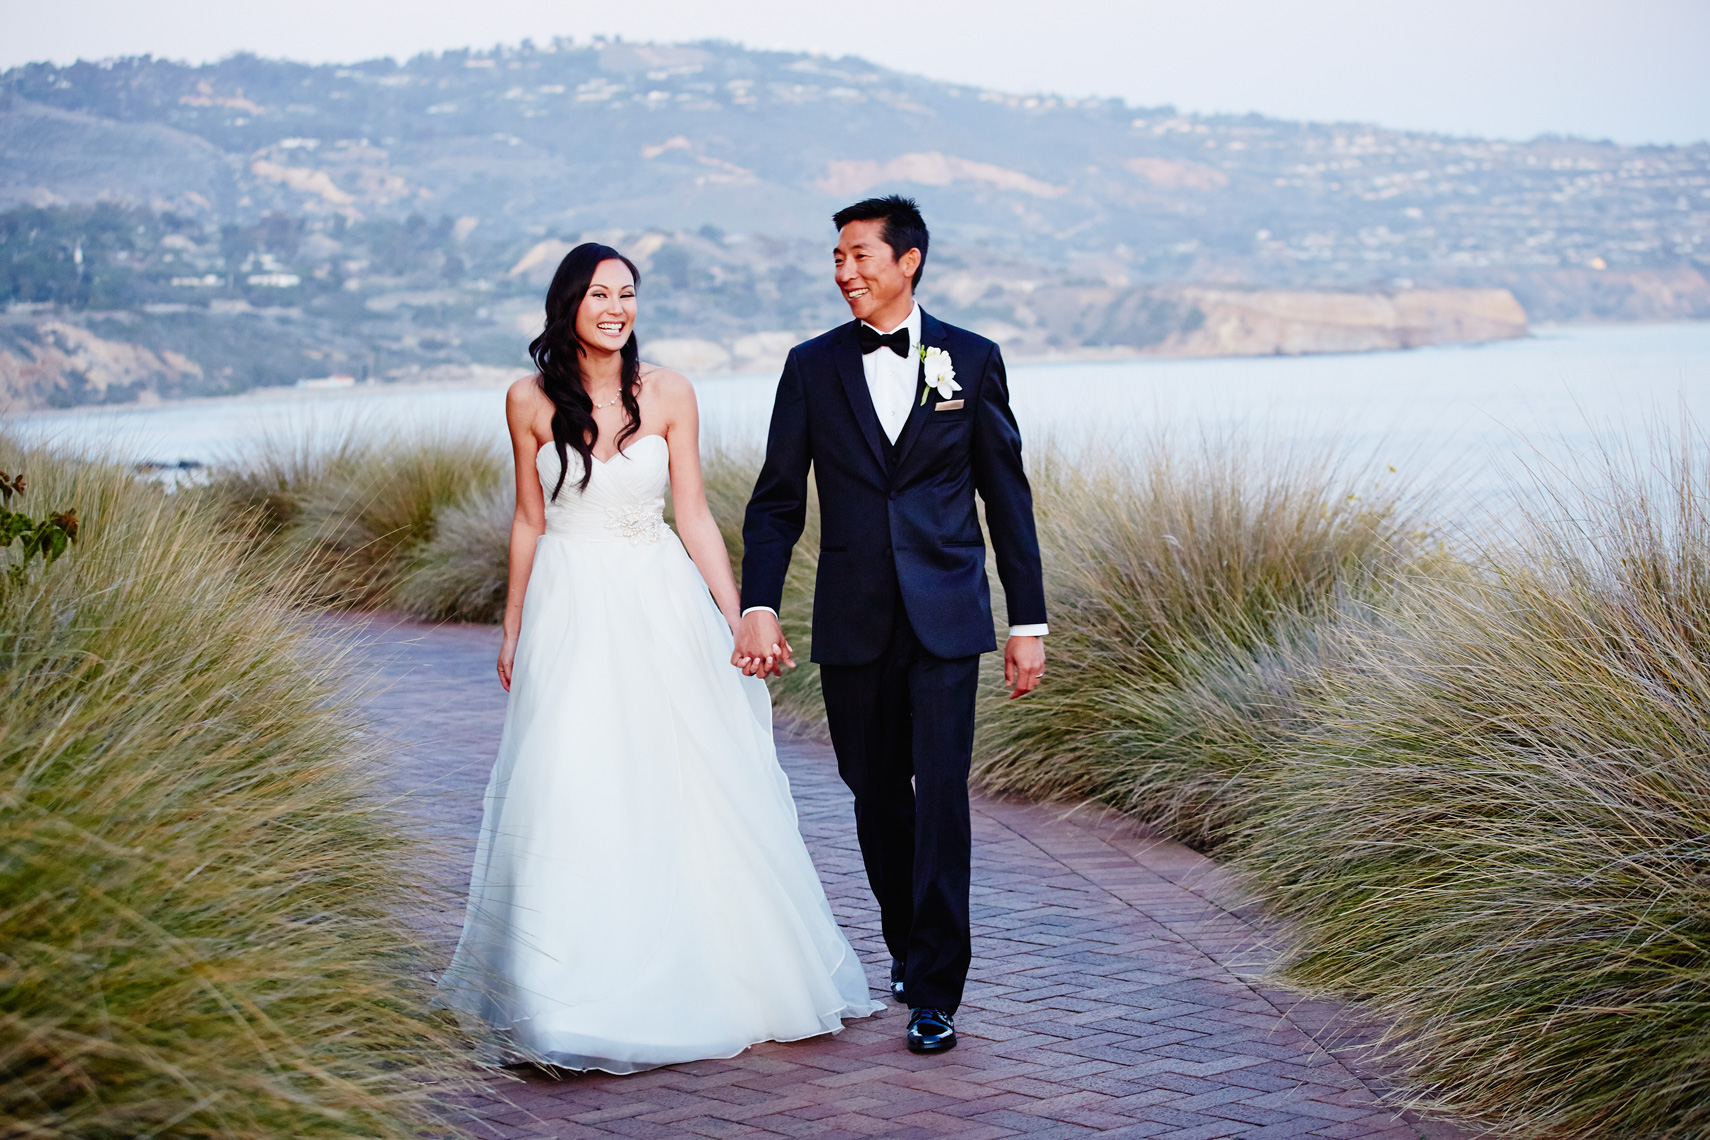 Bride and groom walk together after wedding ceremony at Terranea Resort in Los Angeles, California.